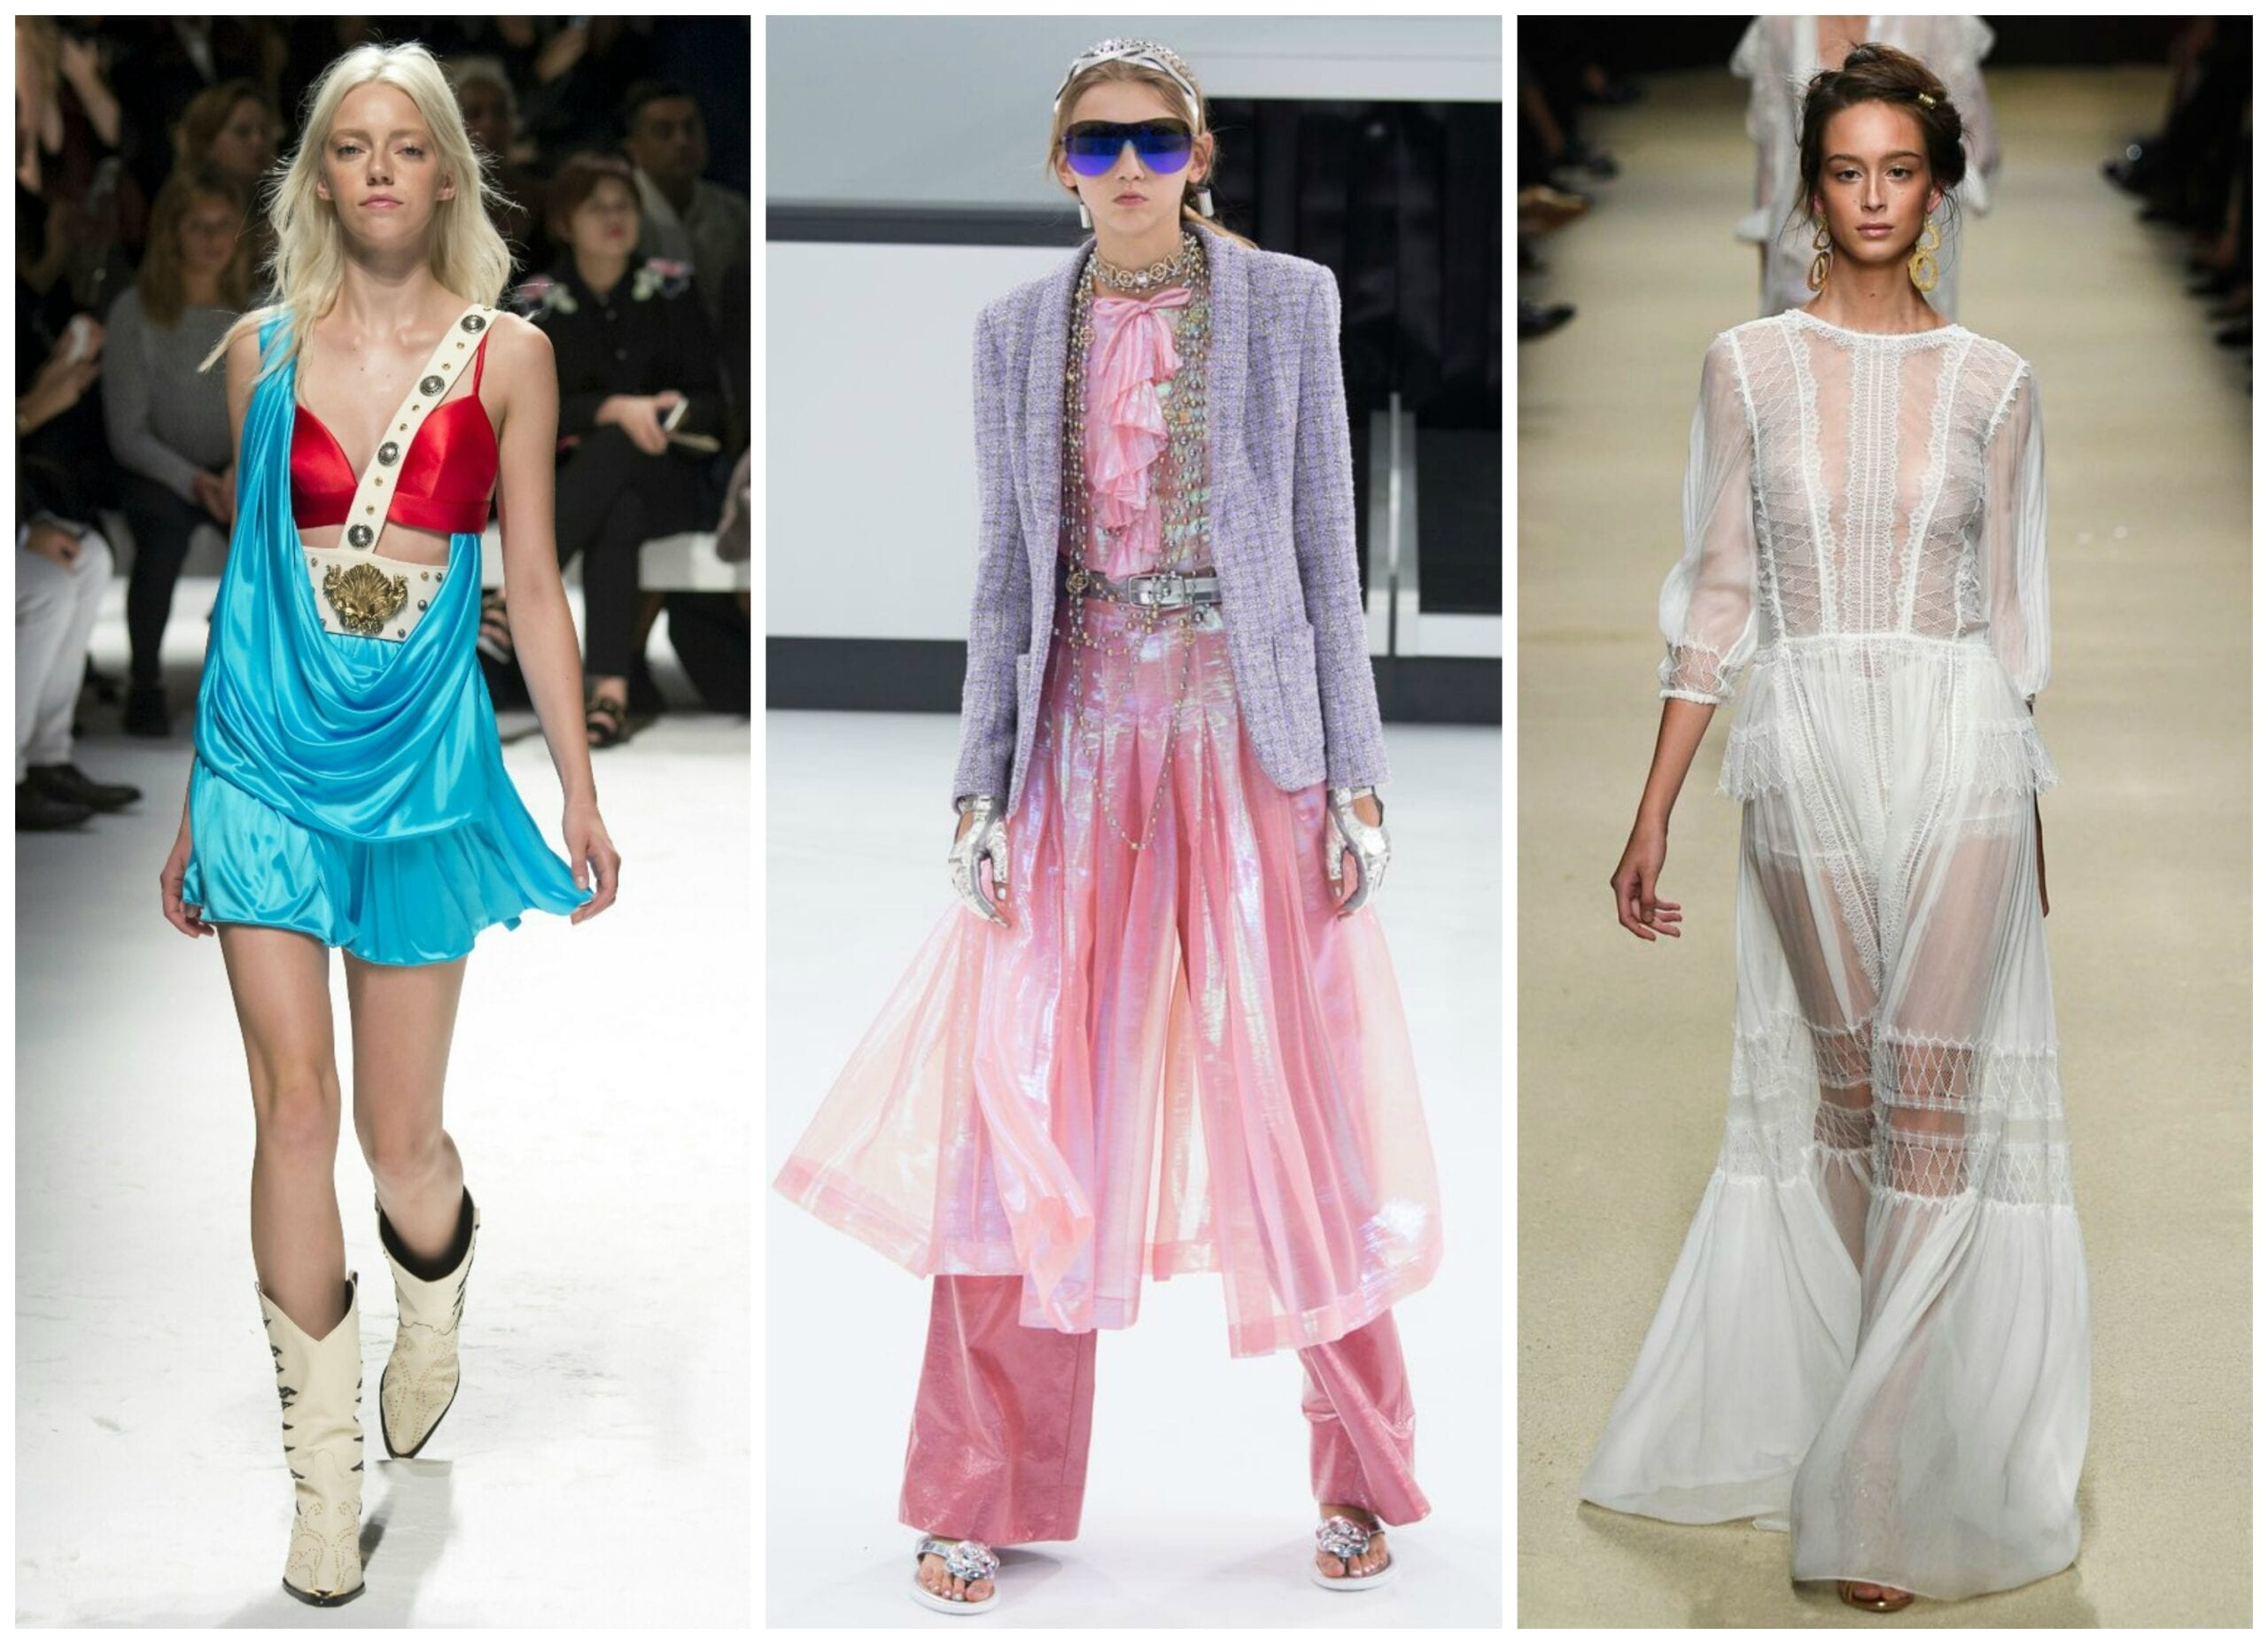 tendenze moda spring summer 2016, theladycracy.it, elisa bellino, total white look ss 2016, all white outfit, fashion blogger famose, chanel ss 2016, fausto puglisi ss spring summer 2016, dior ss 2016